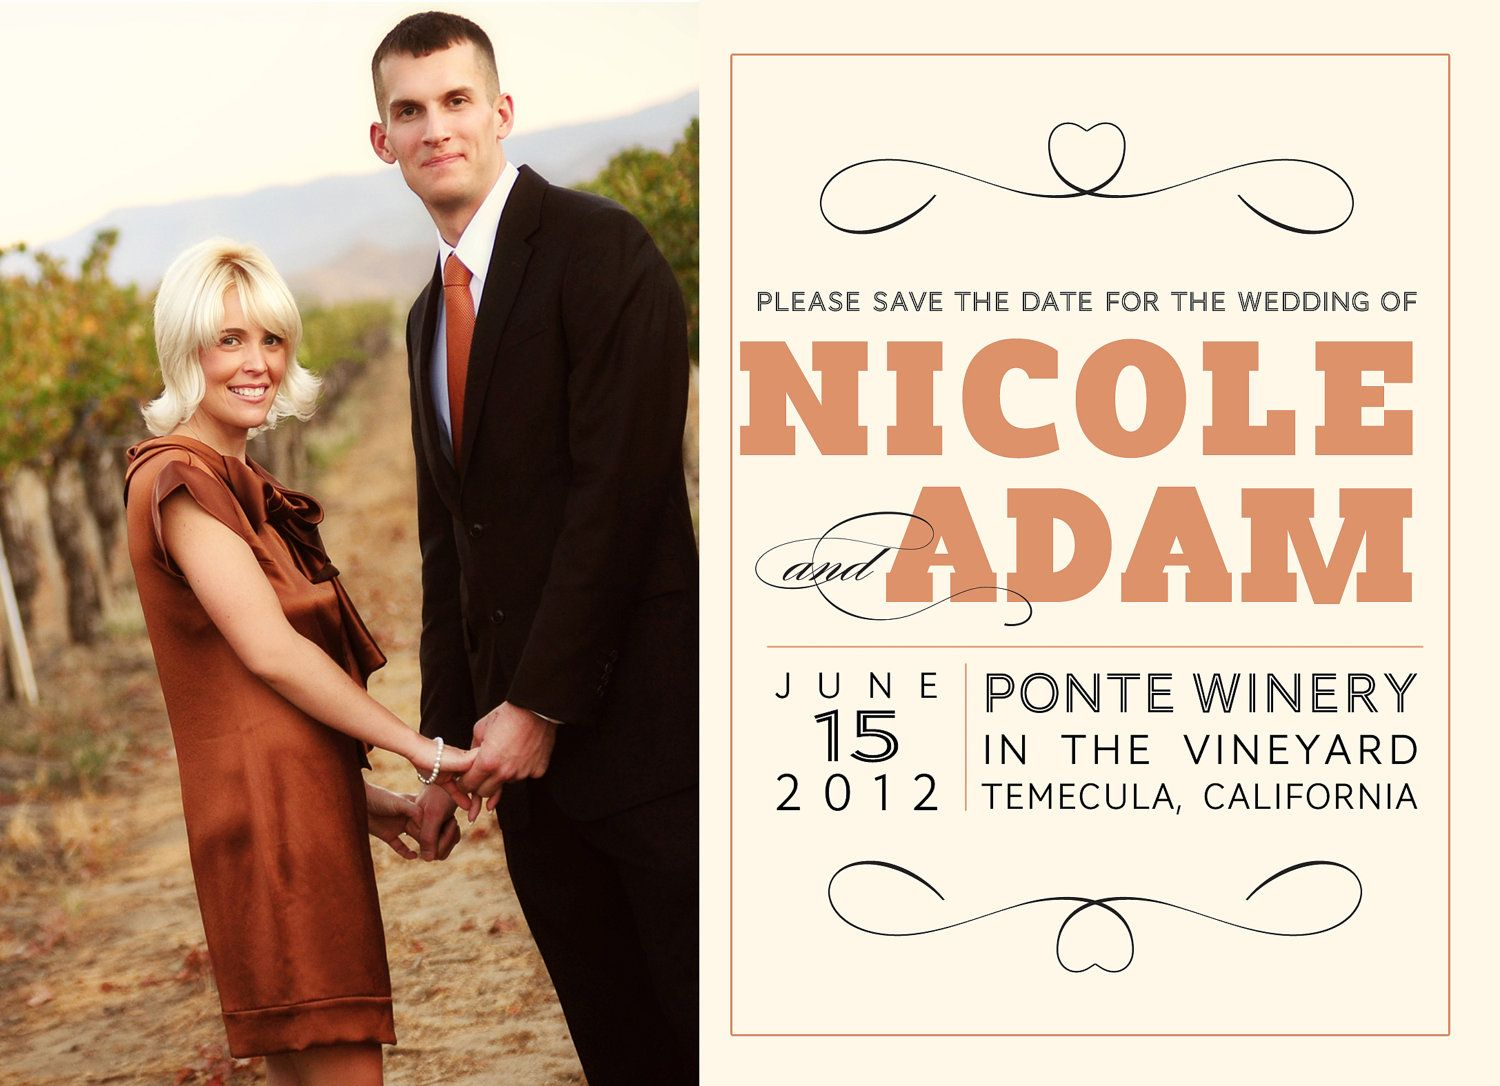 Save the Date photoshop card template for photographers - Squared Save the Date. $8.00, via Etsy.